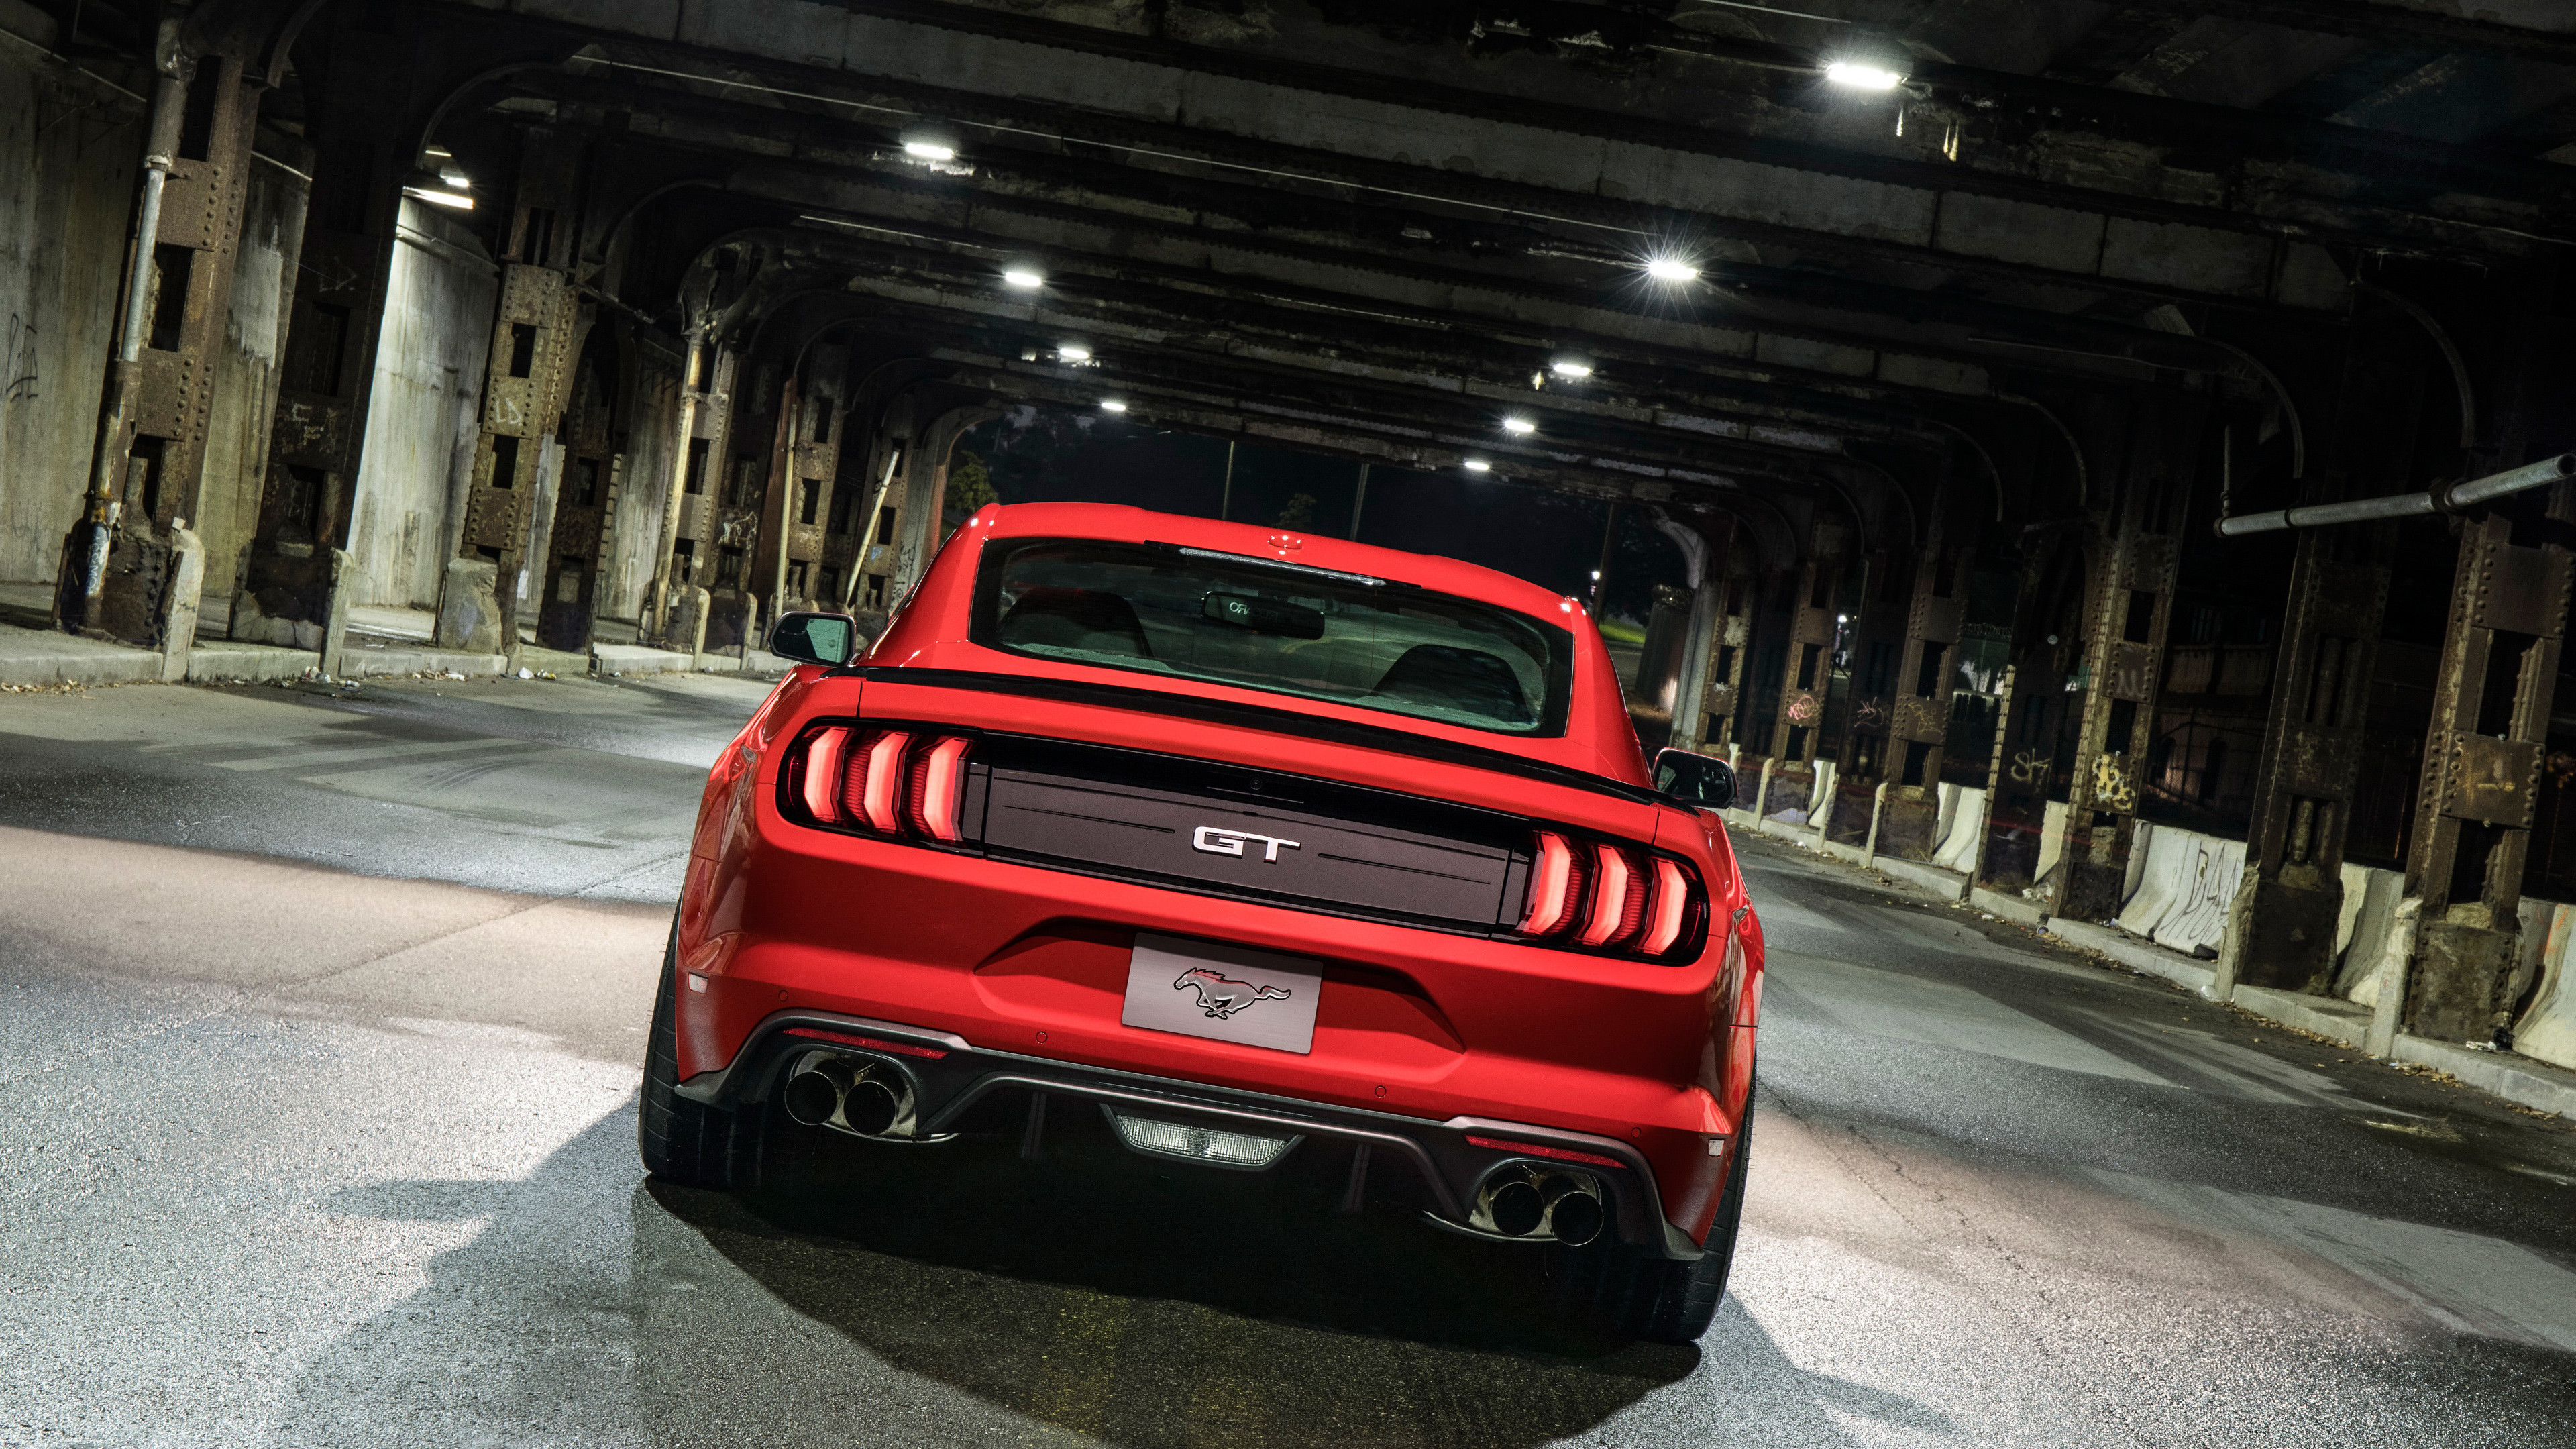 Res: 3840x2160, 2018 Ford Mustang GT Level 2 Performance Pack 4K 4